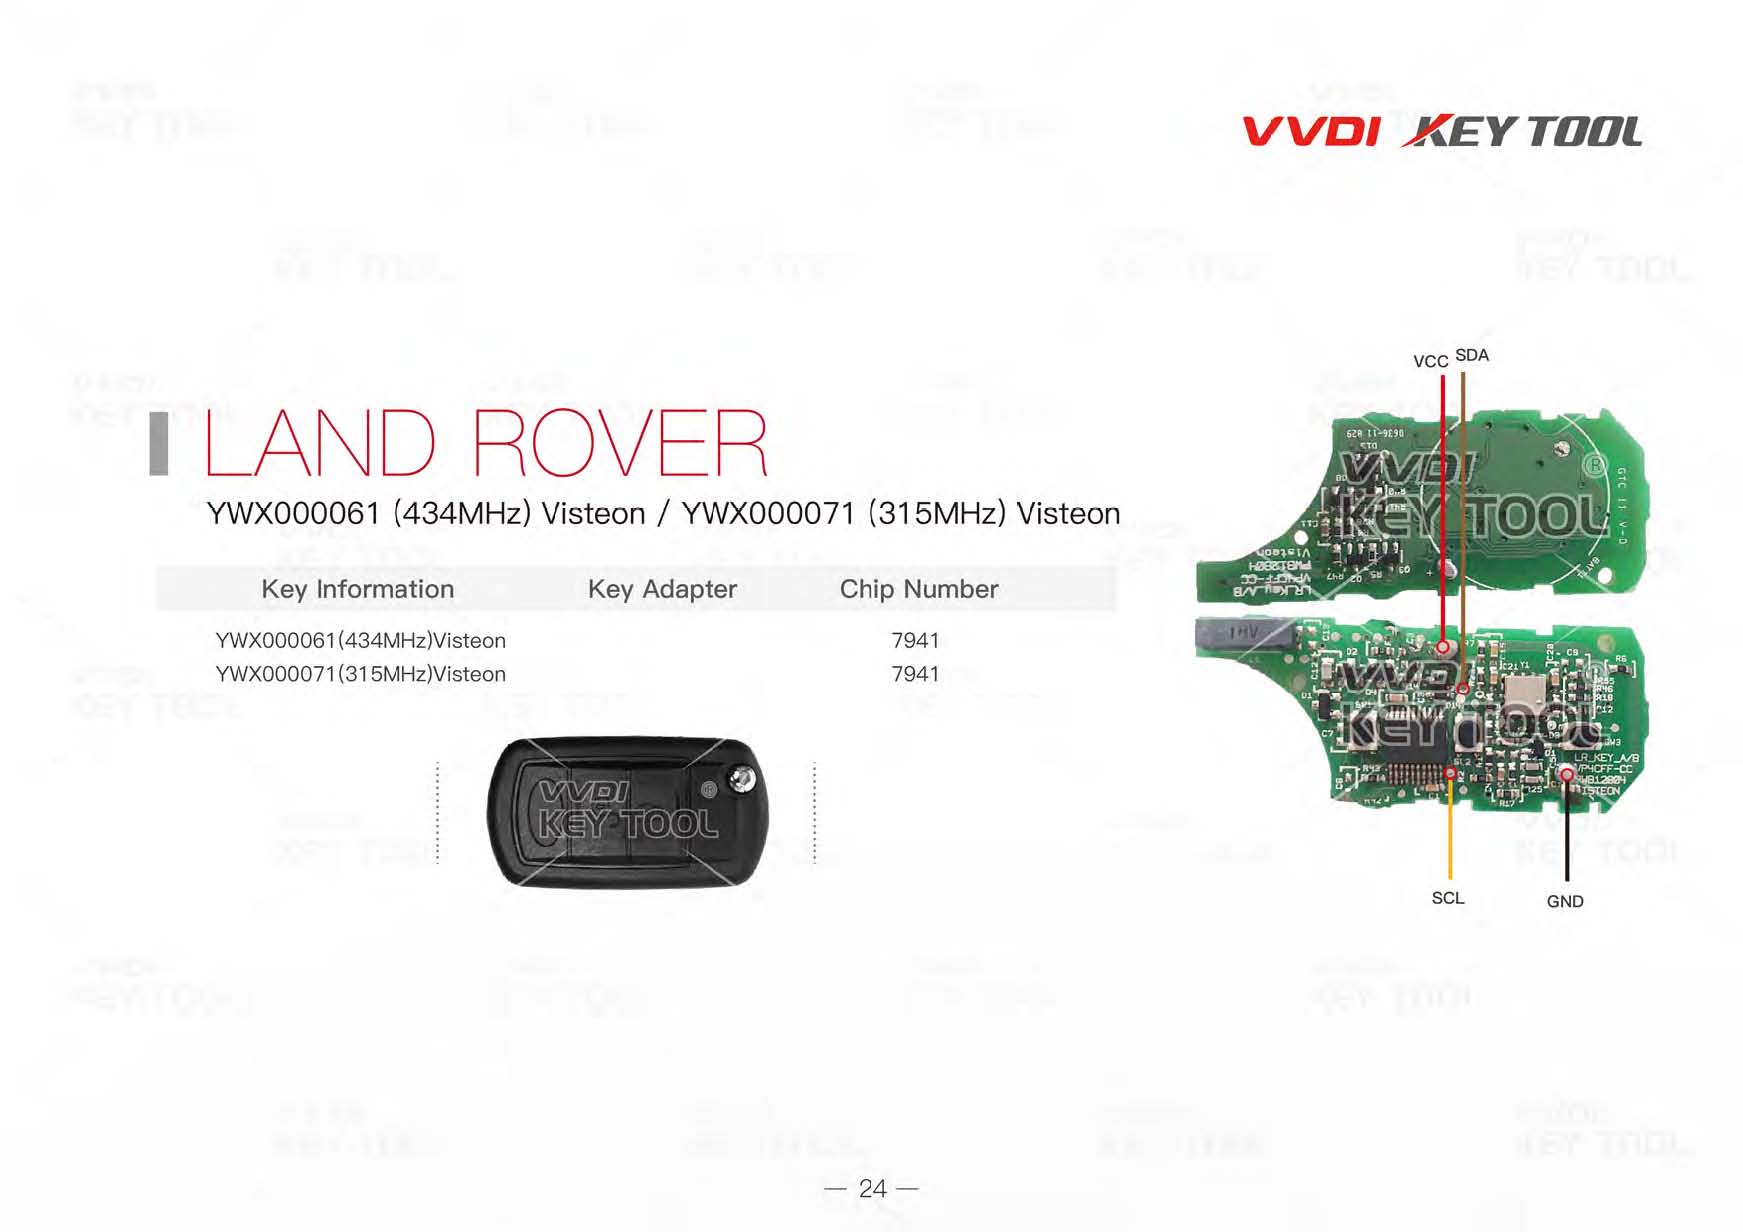 vvdi-key-tool-renew-diagram-24